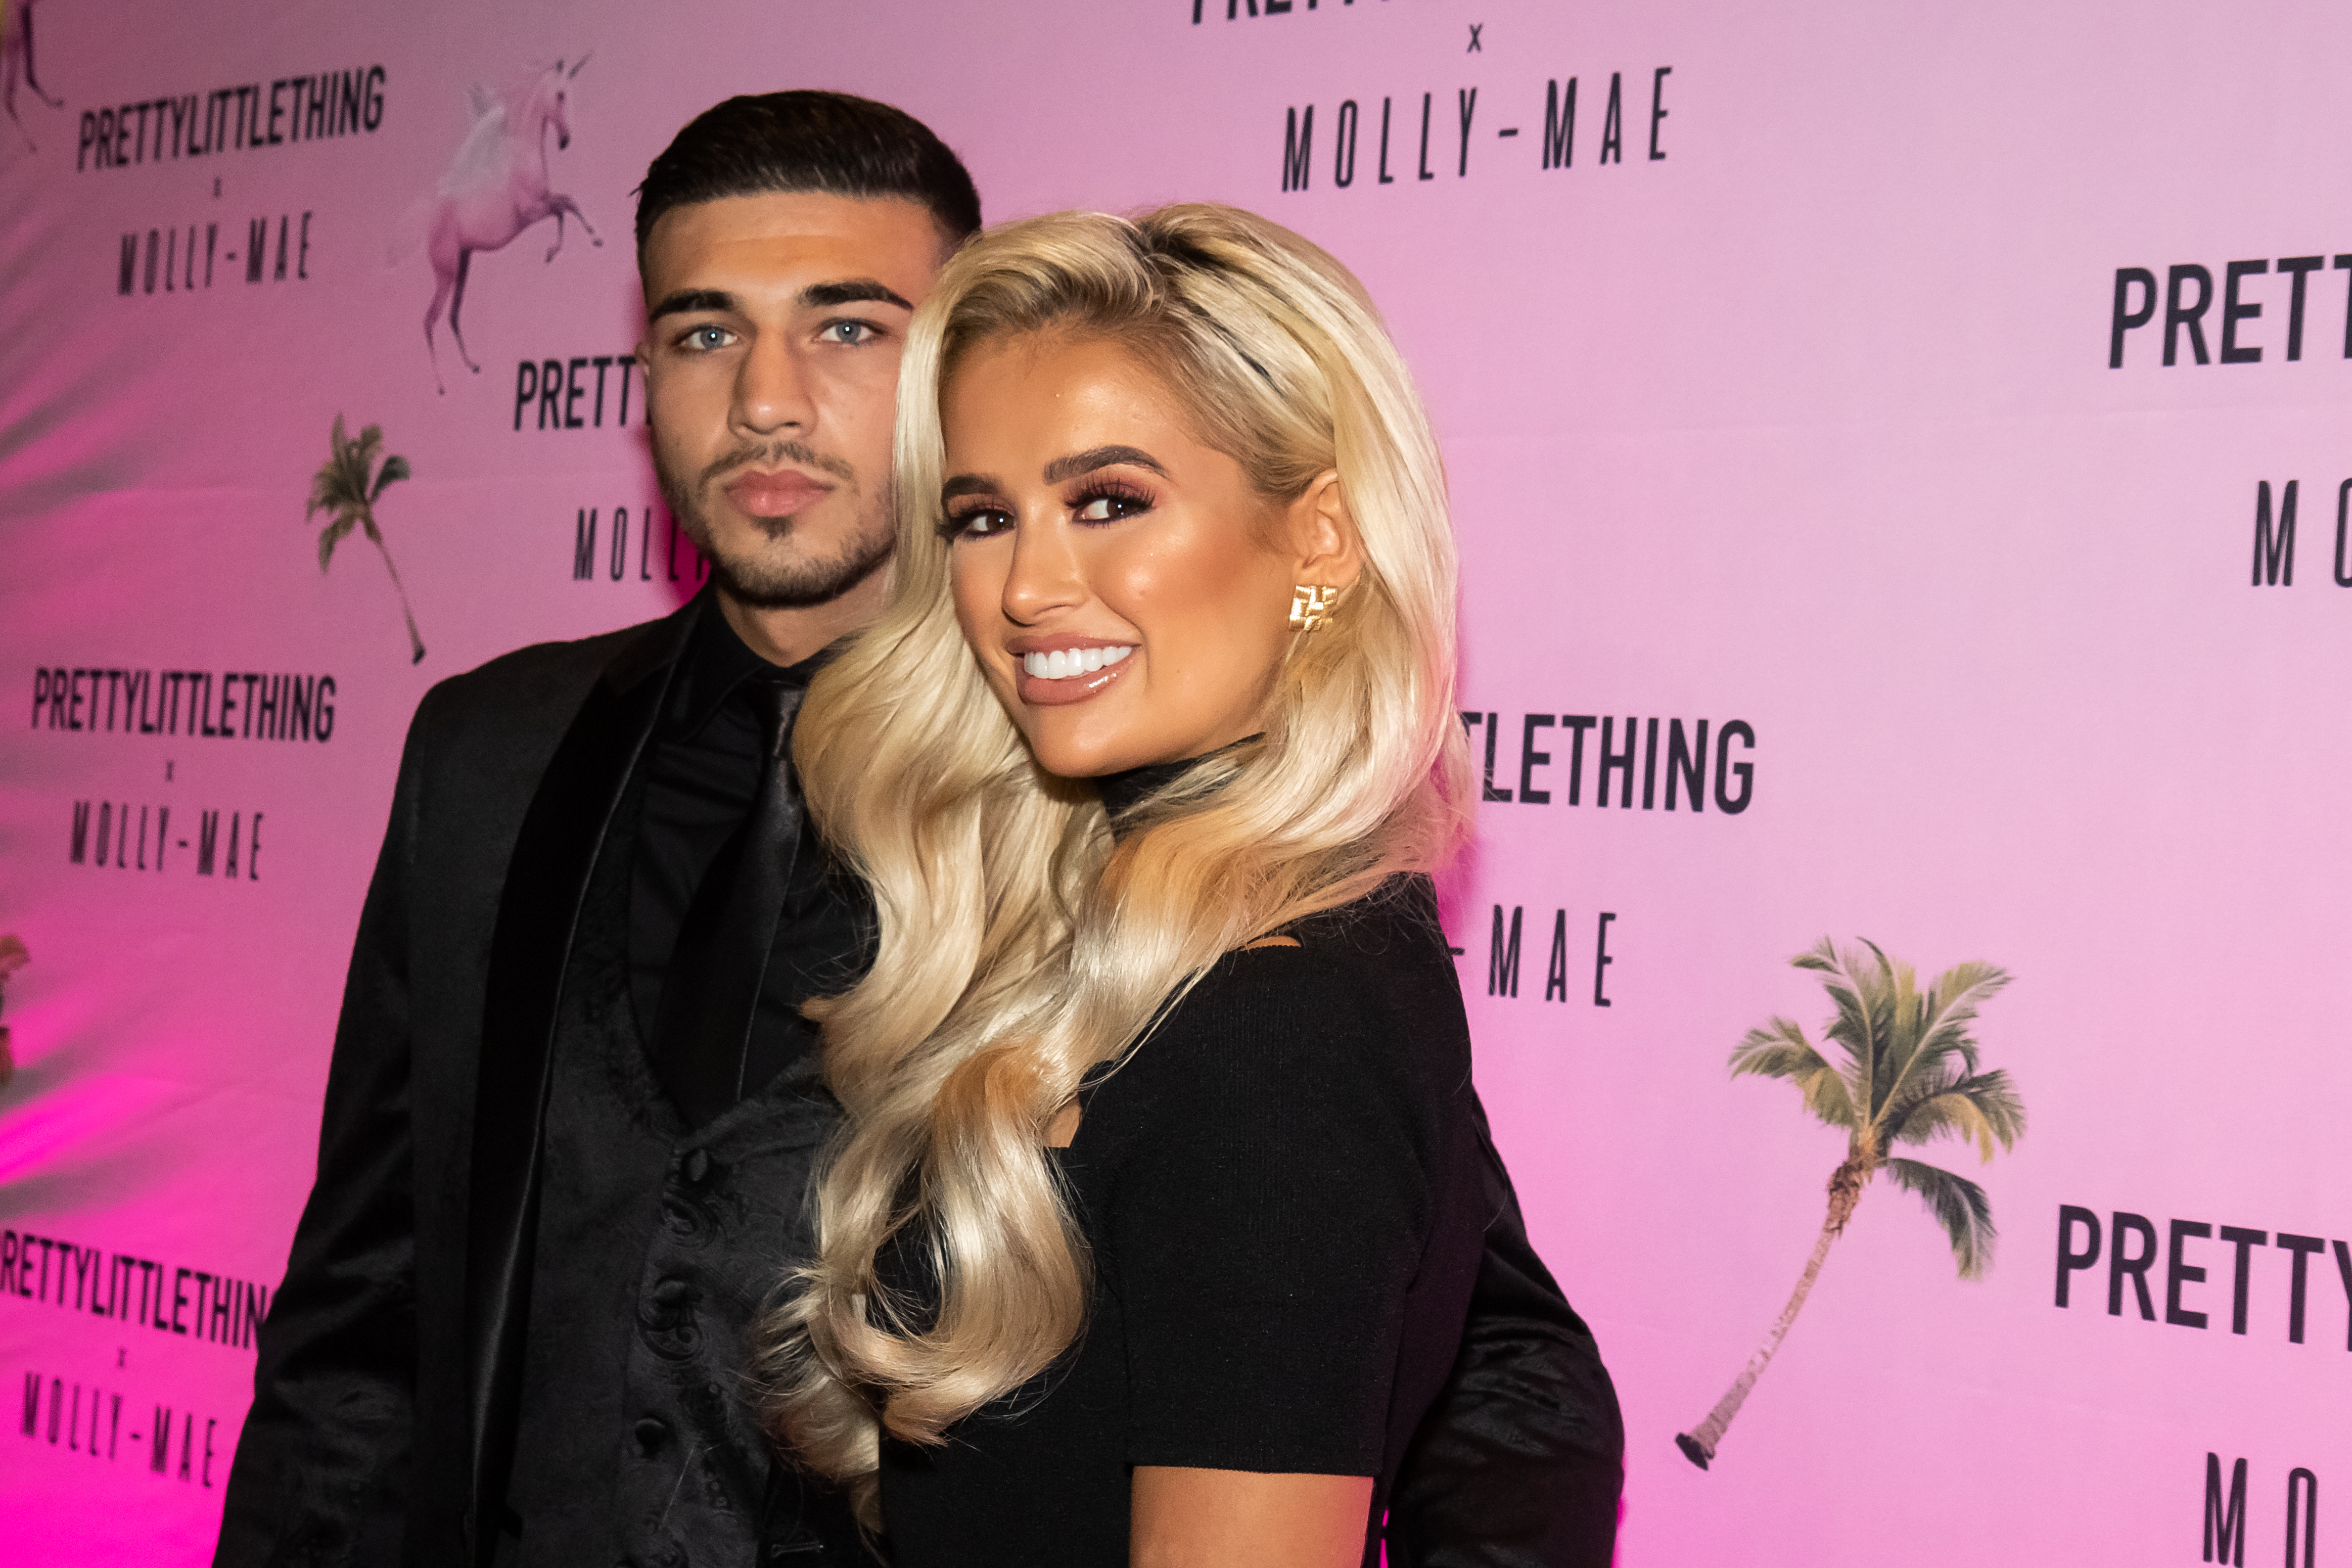 MANCHESTER, ENGLAND - SEPTEMBER 01: Tommy Fury and Molly-Mae attends the Pretty Little Thing X Molly-Mae party at Rosso on September 01, 2019 in Manchester, England. (Photo by Carla Speight/Getty Images)